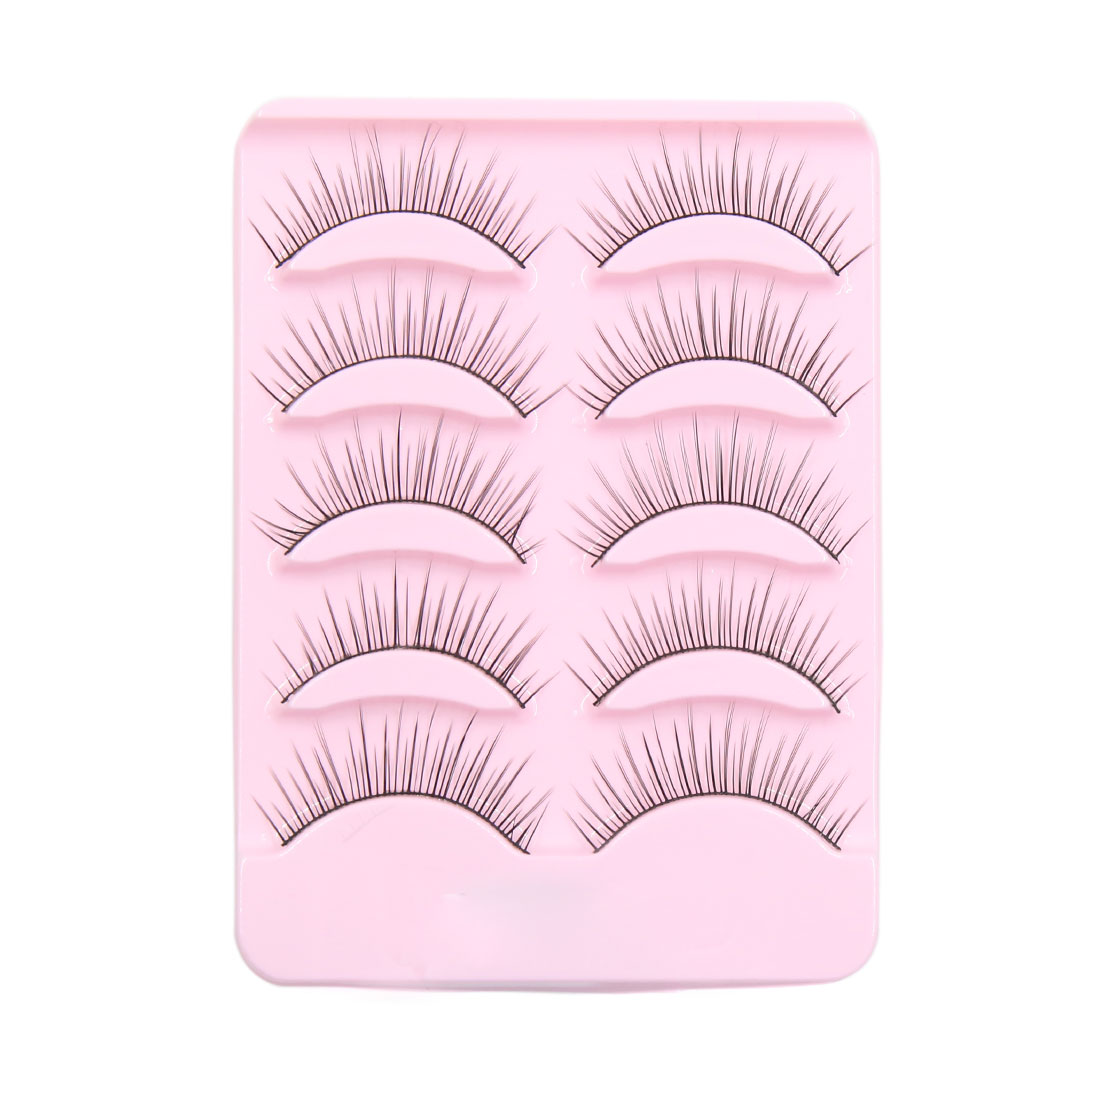 10 Pair Thick False Eyelashes Extension Eyes Beauty Makeup Tool #4